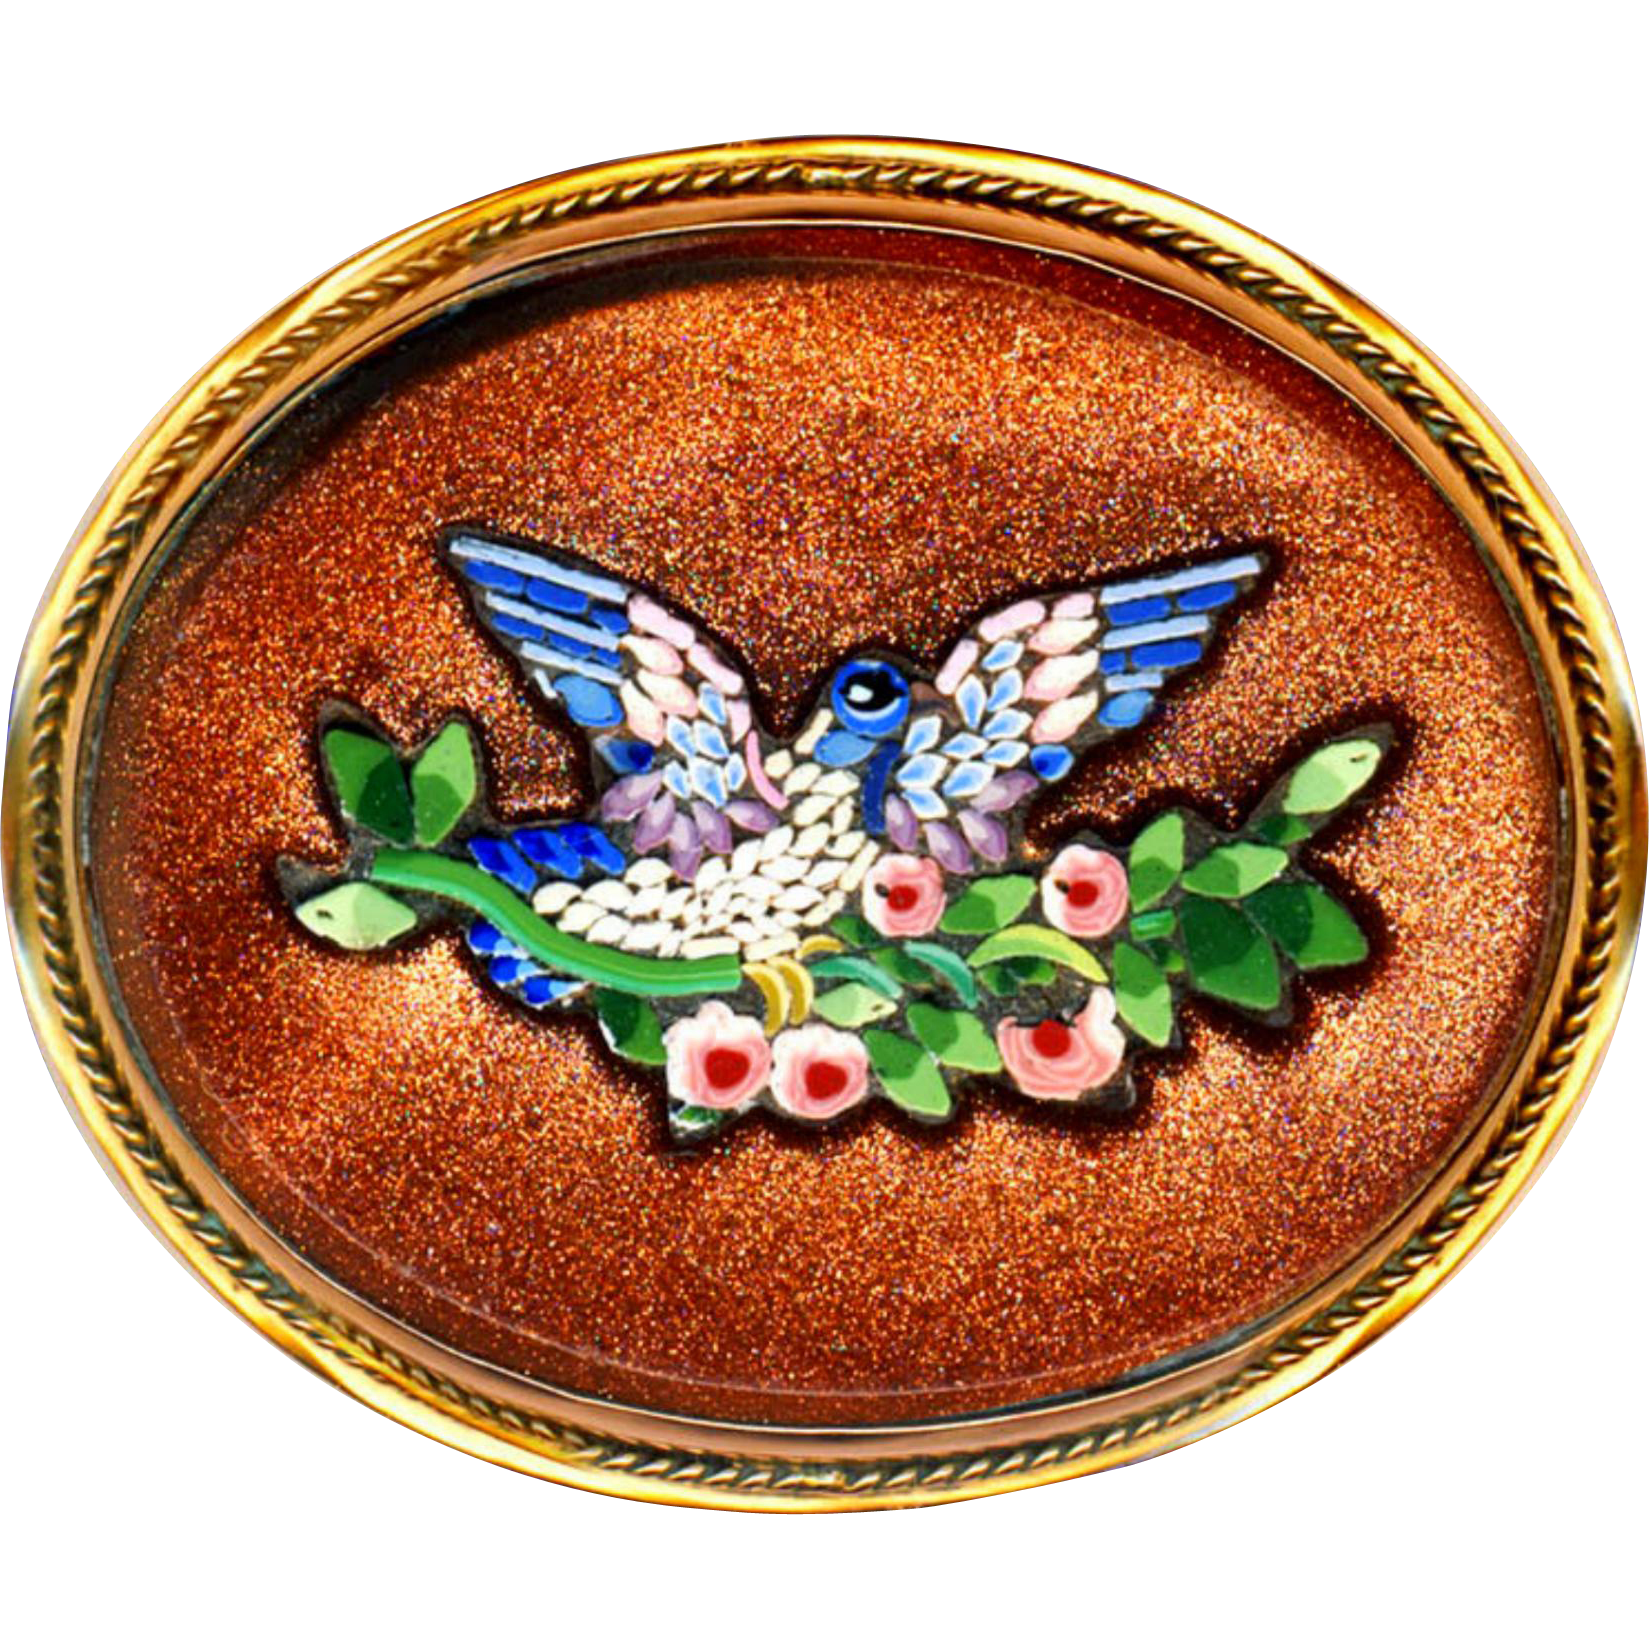 Brooch--Large Late 19th C. Micromosaic Blue Bird in Roses in 14 Karat Gold Mounting